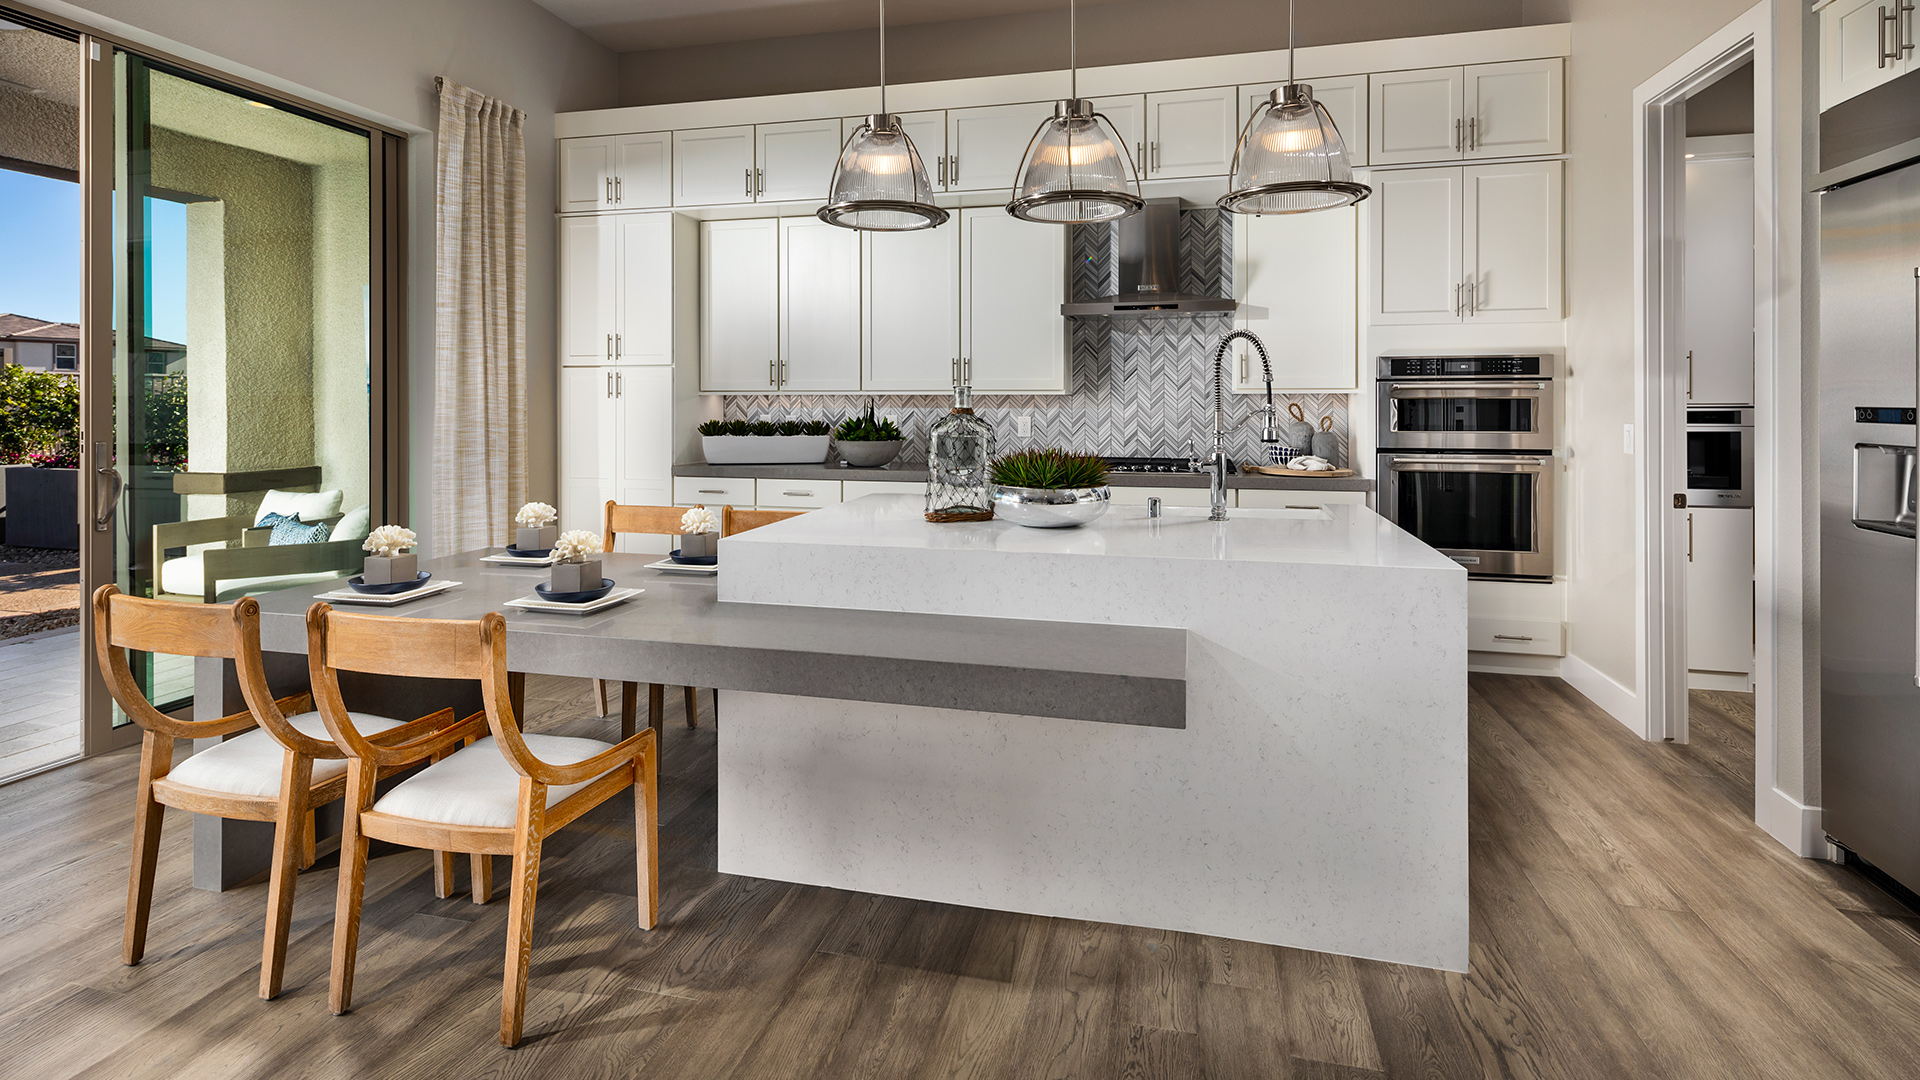 toll brothers shadow point new construction homes for sale - las vegas homes for sale - las vegas real estate - las vegas toll brothers - las vegas new construction homes - vegas realtor